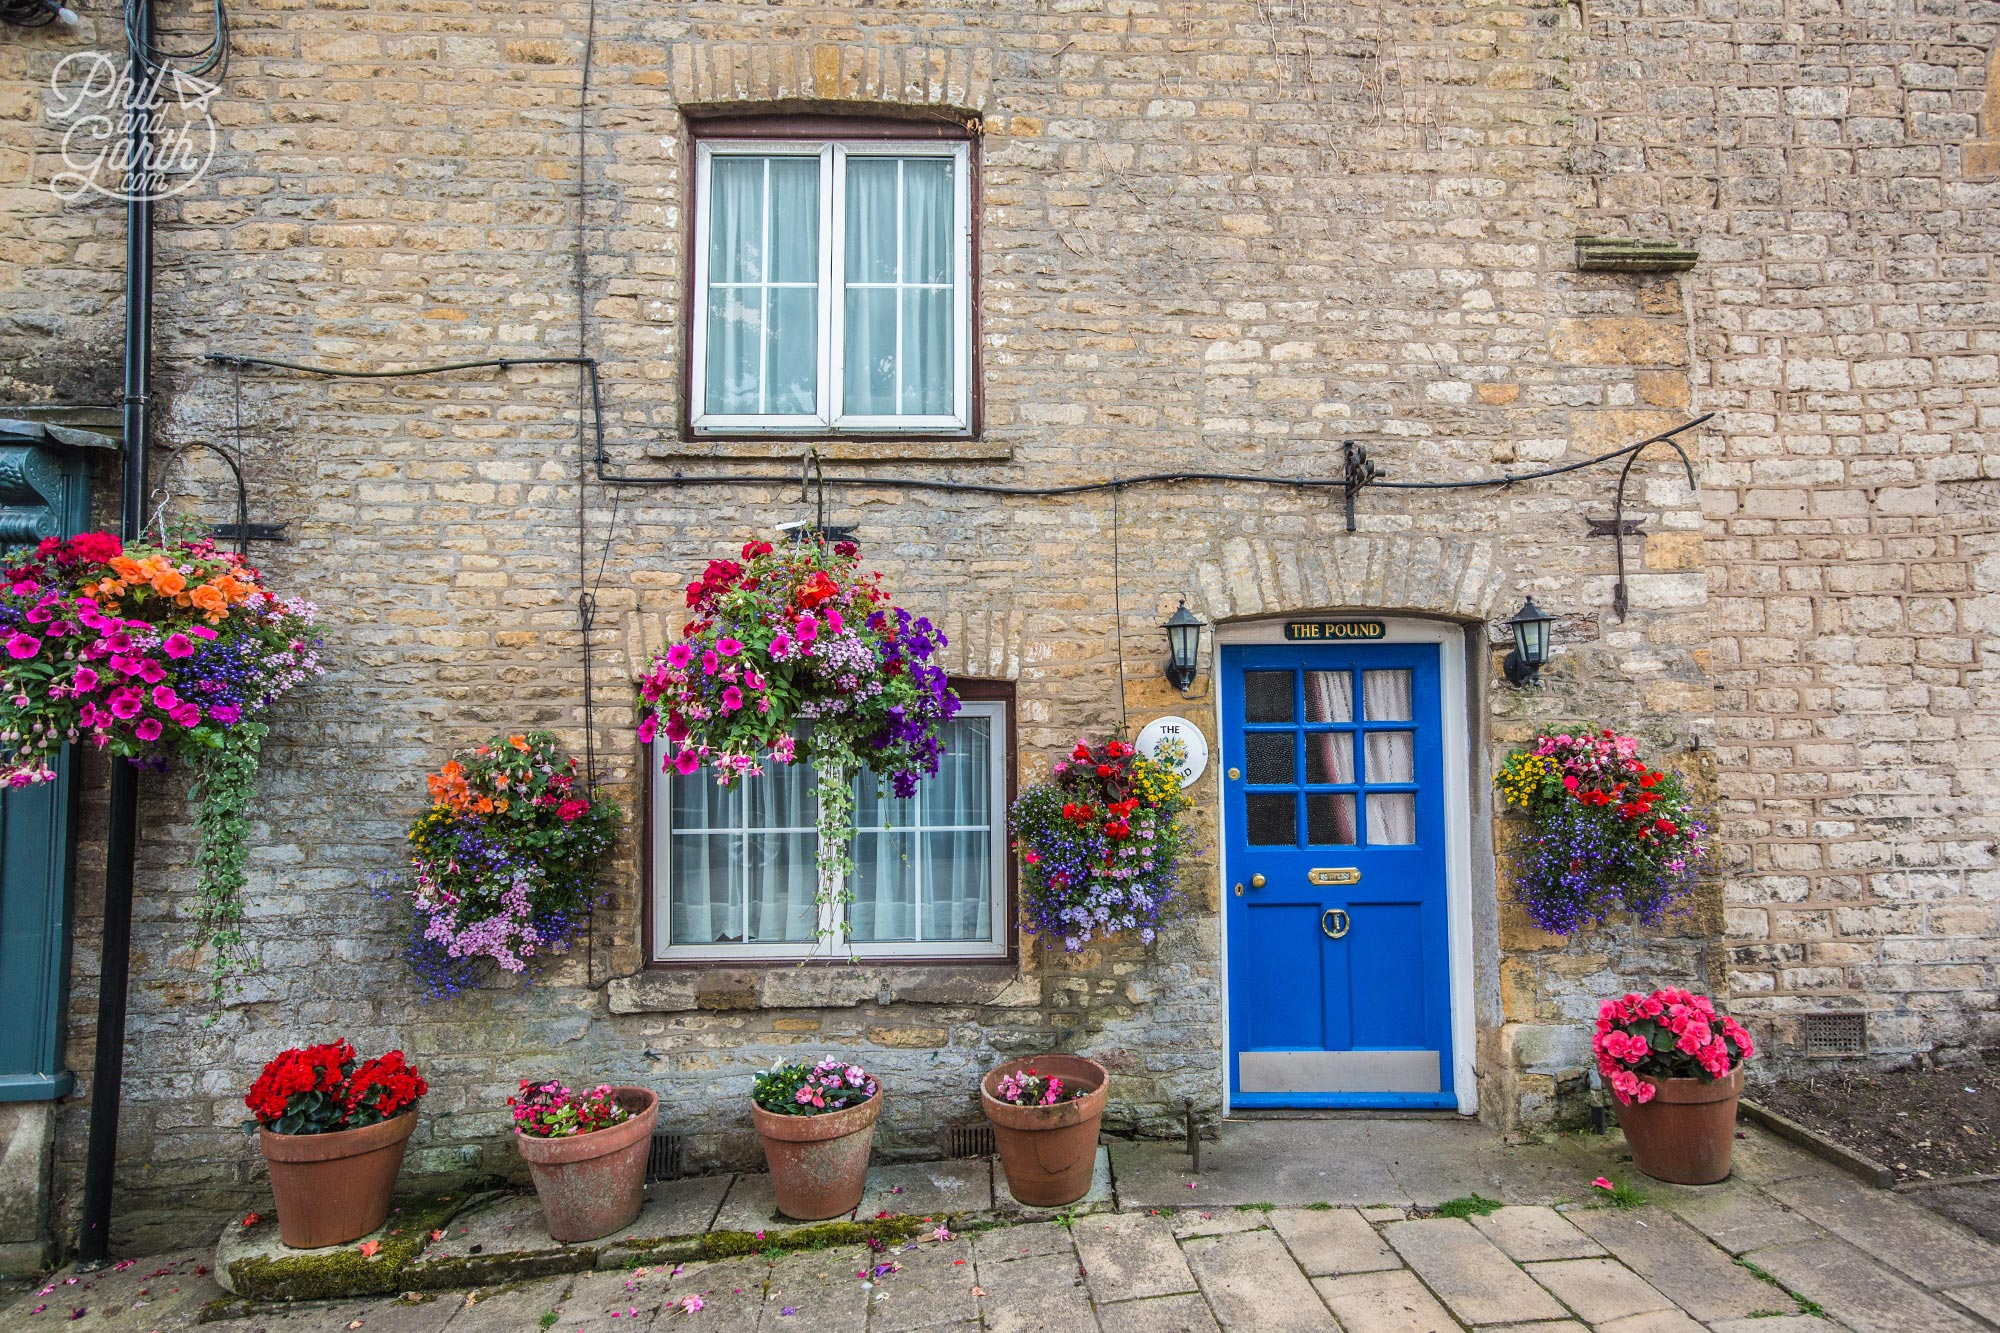 Colourful hanging baskets in Stow-on-the-Wold